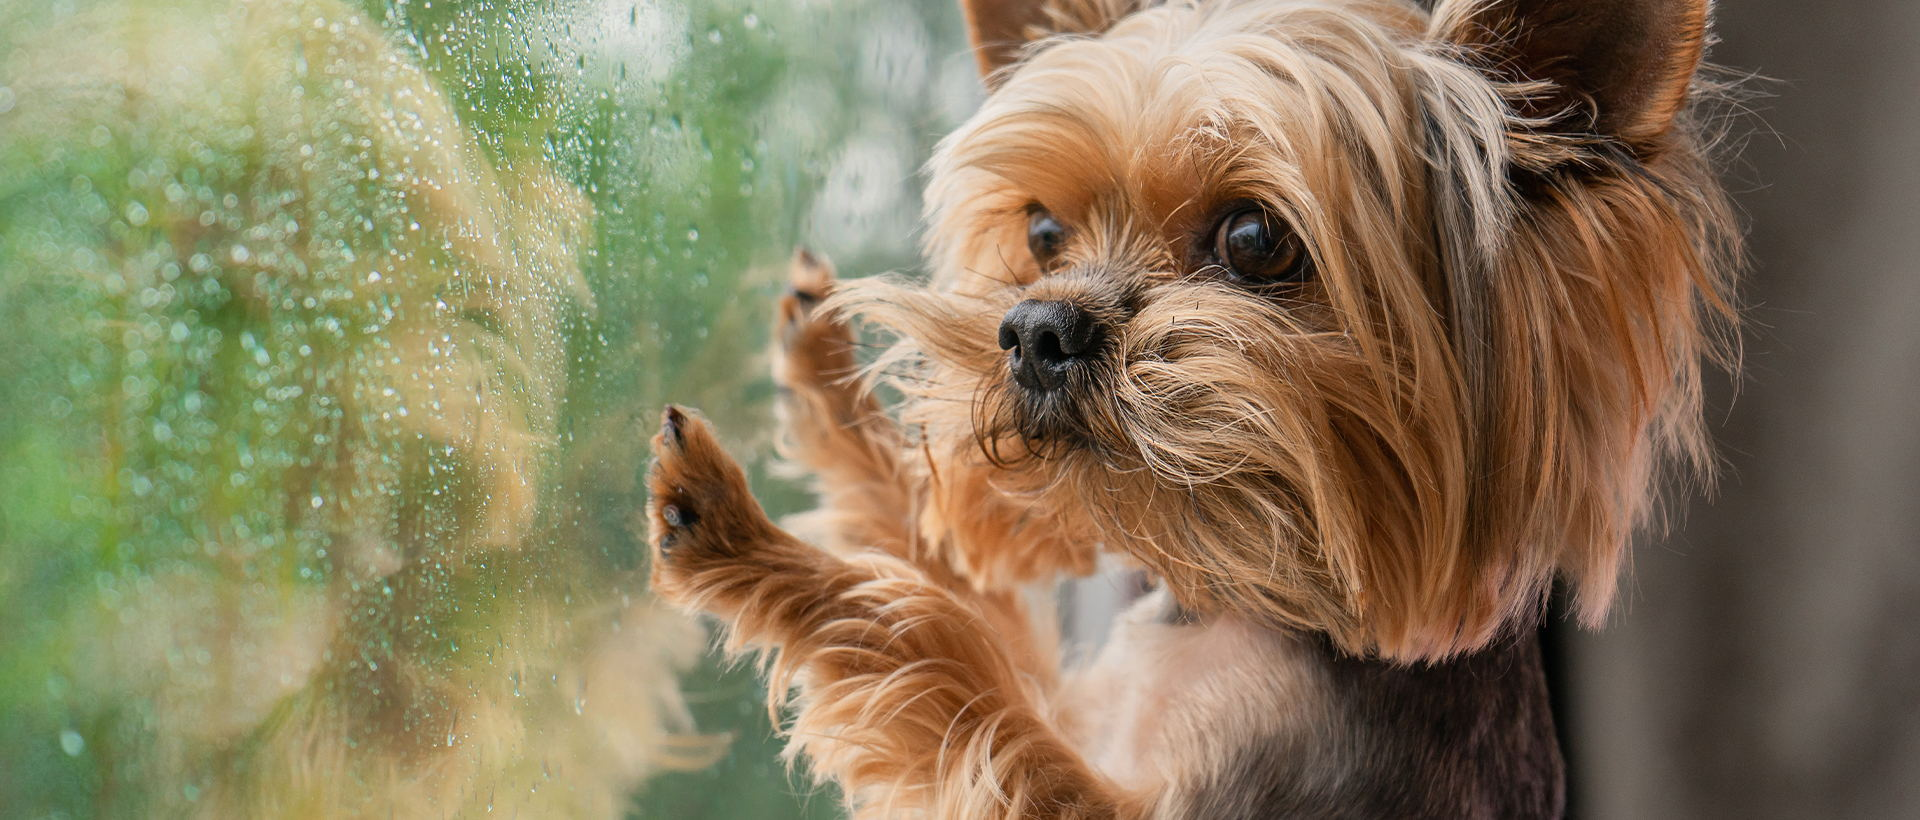 An adorable Yorkshire Terrier puppy looking out of a window on a rainy day.